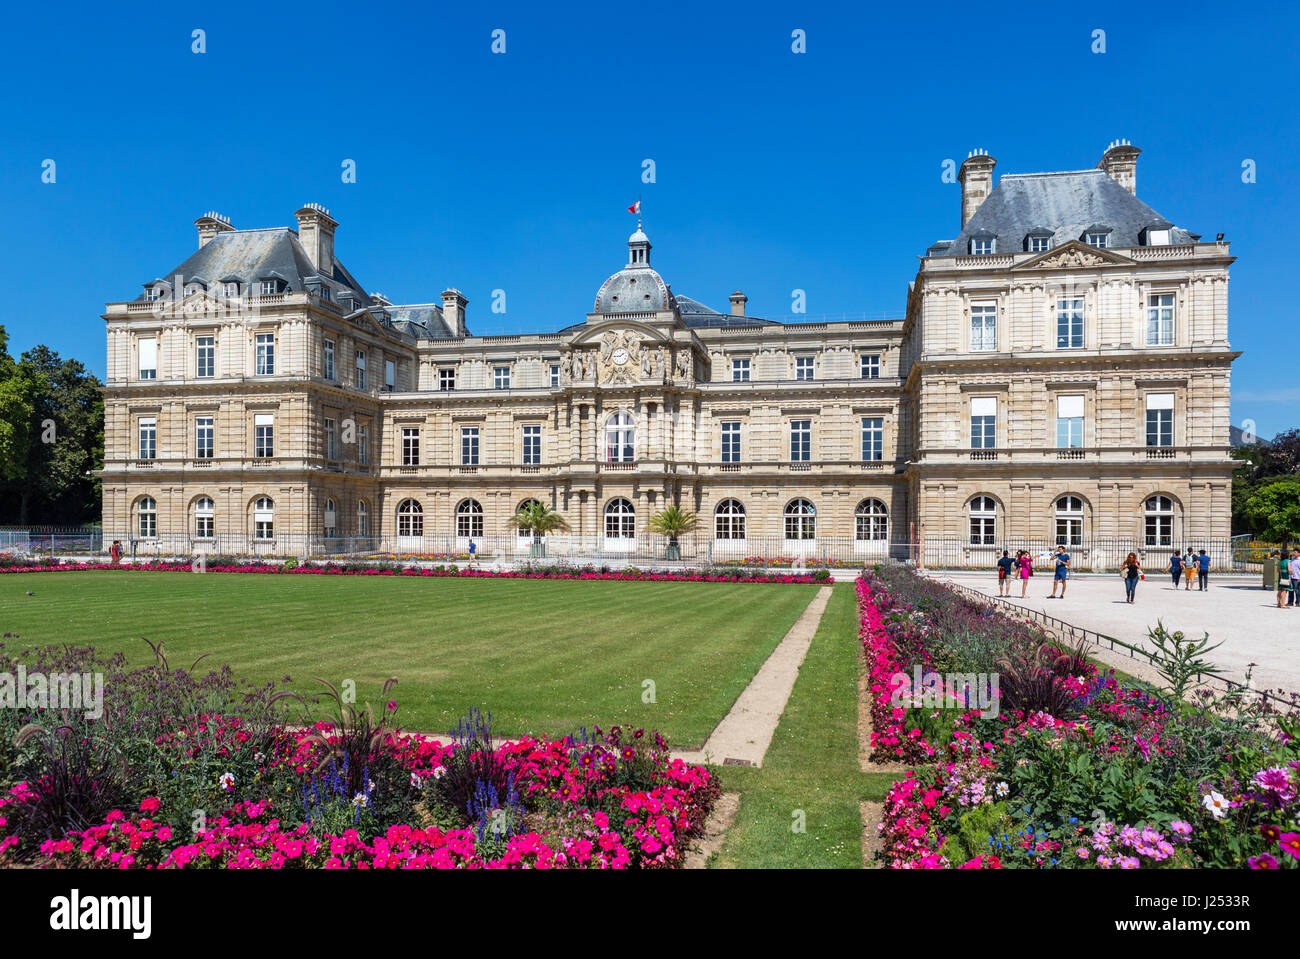 The Palais du Luxembourg (Luxembourg Palace), Jardin du Luxembourg (Luxembourg Garden), Paris, France - Stock Image